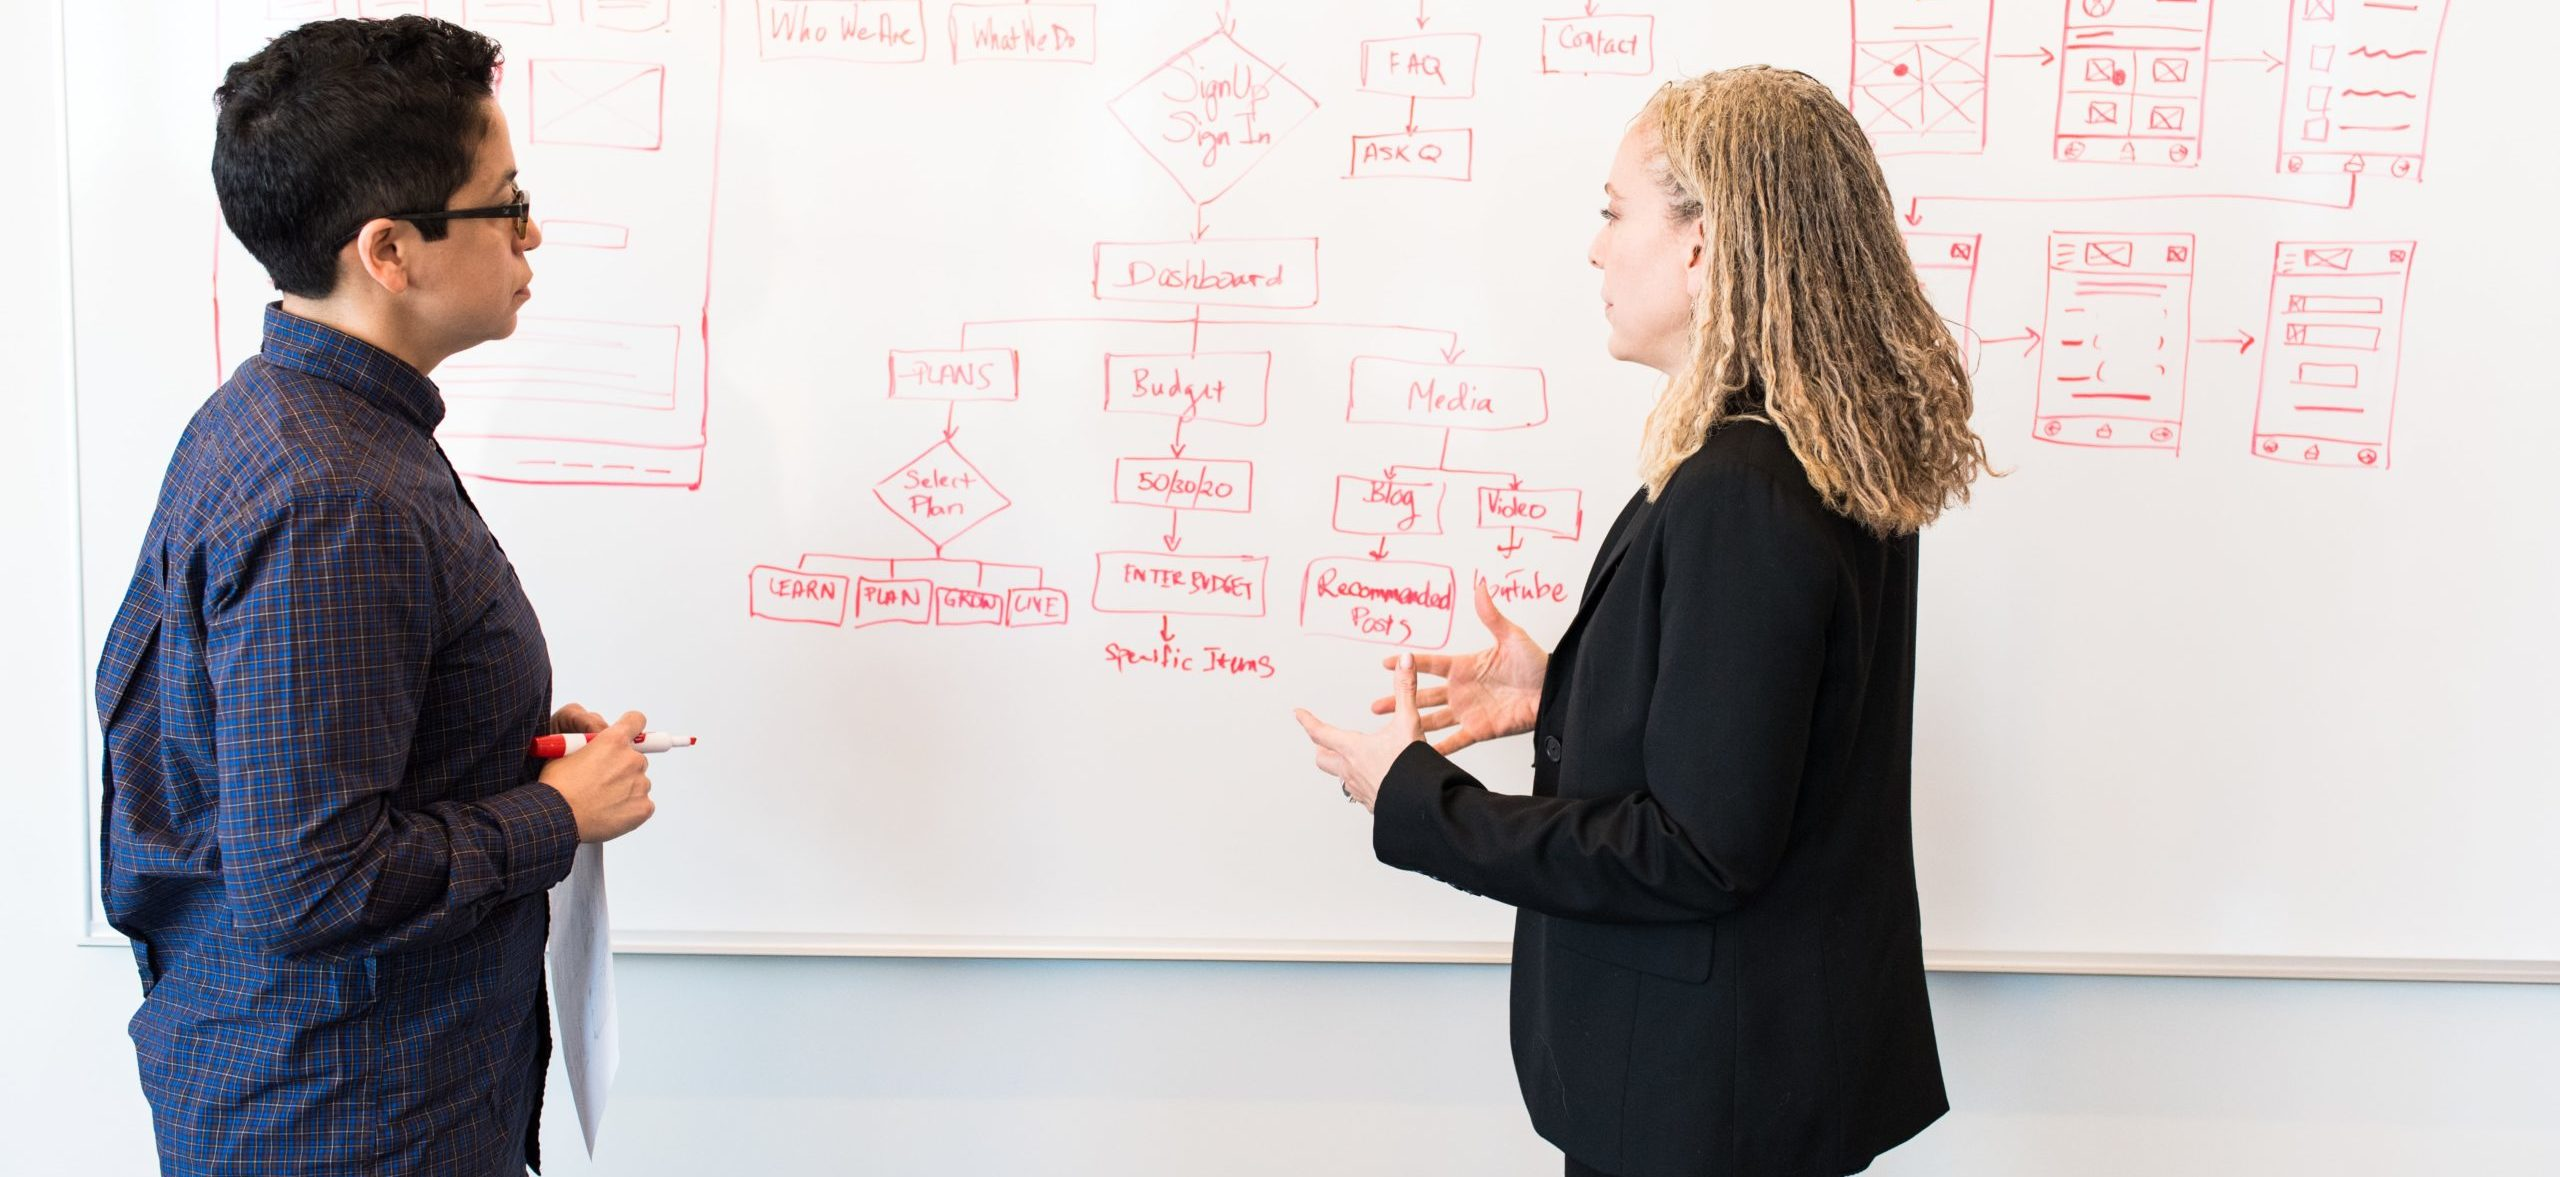 Colleagues working in front of a white board